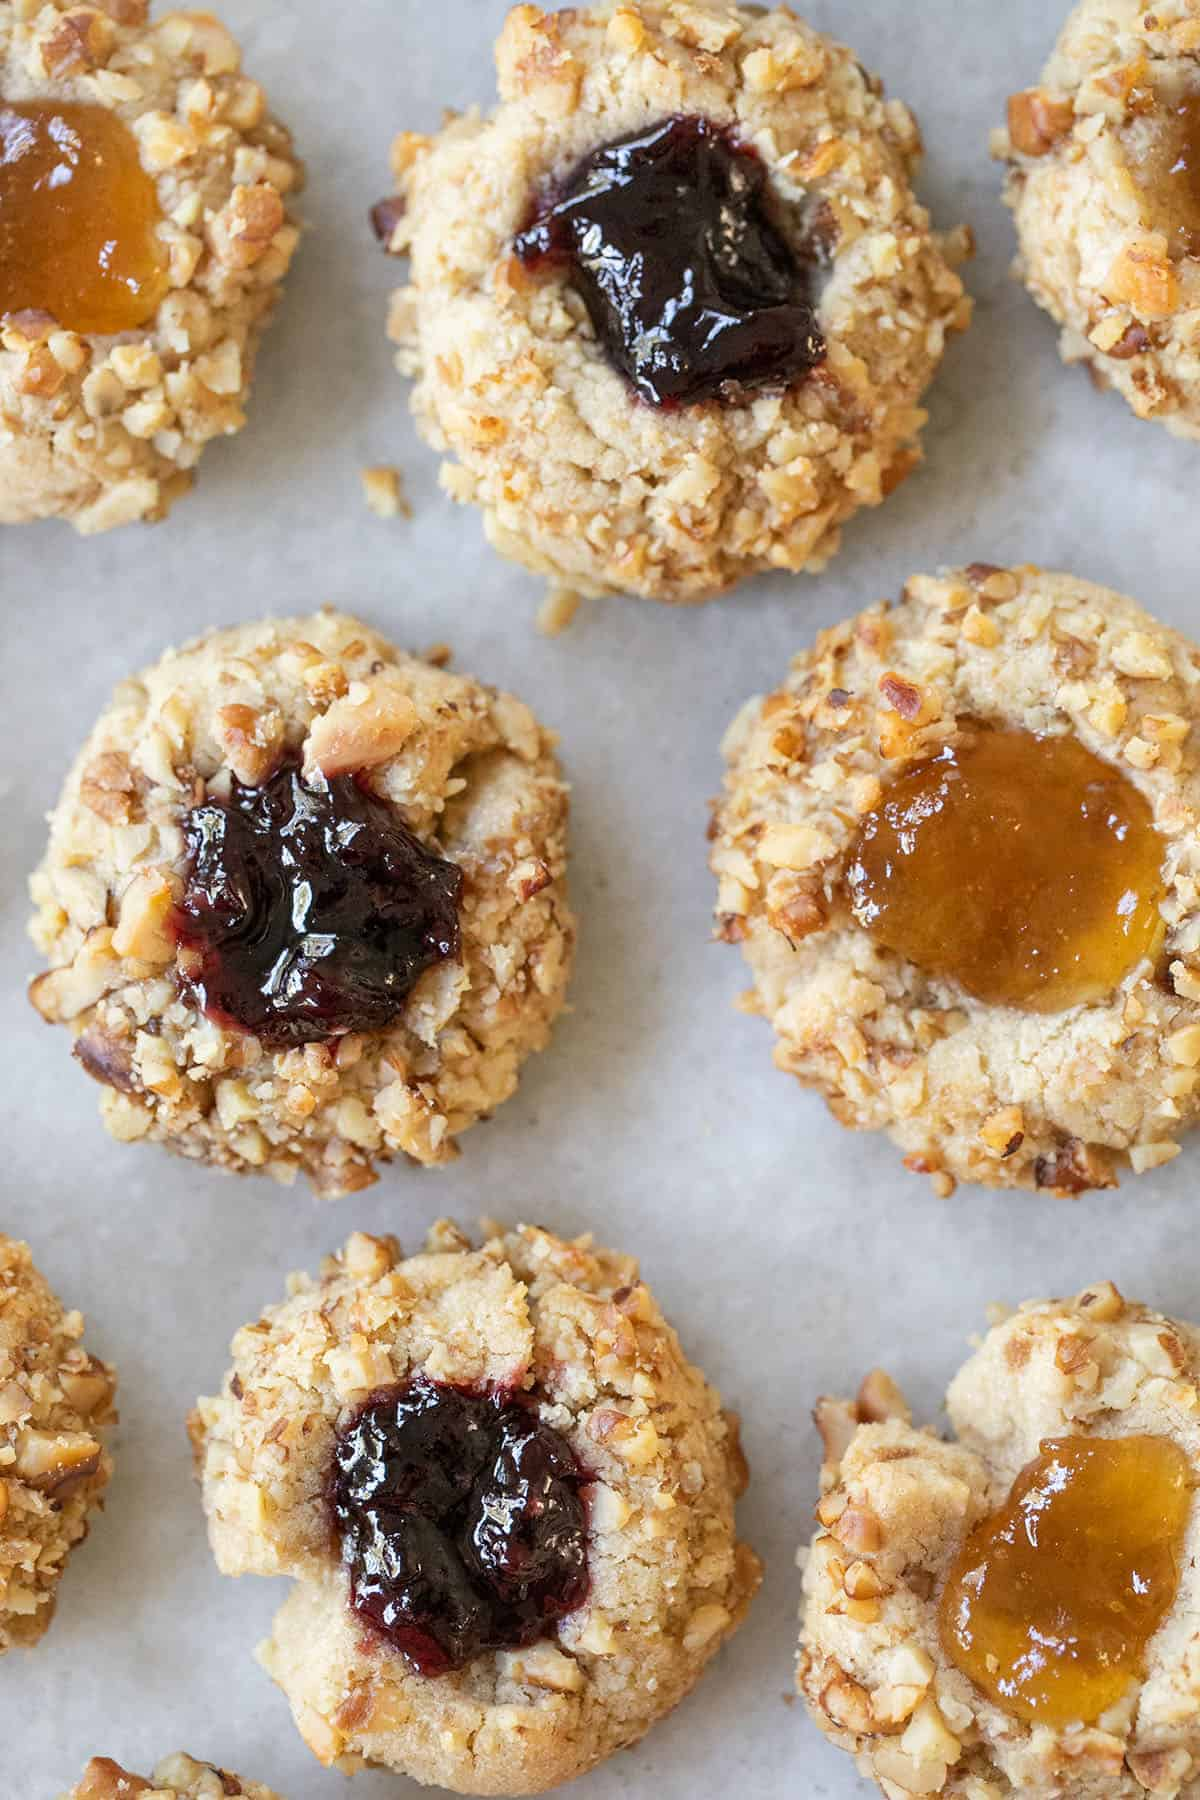 Thumbprint cookies with rolled walnuts and filled with jam.